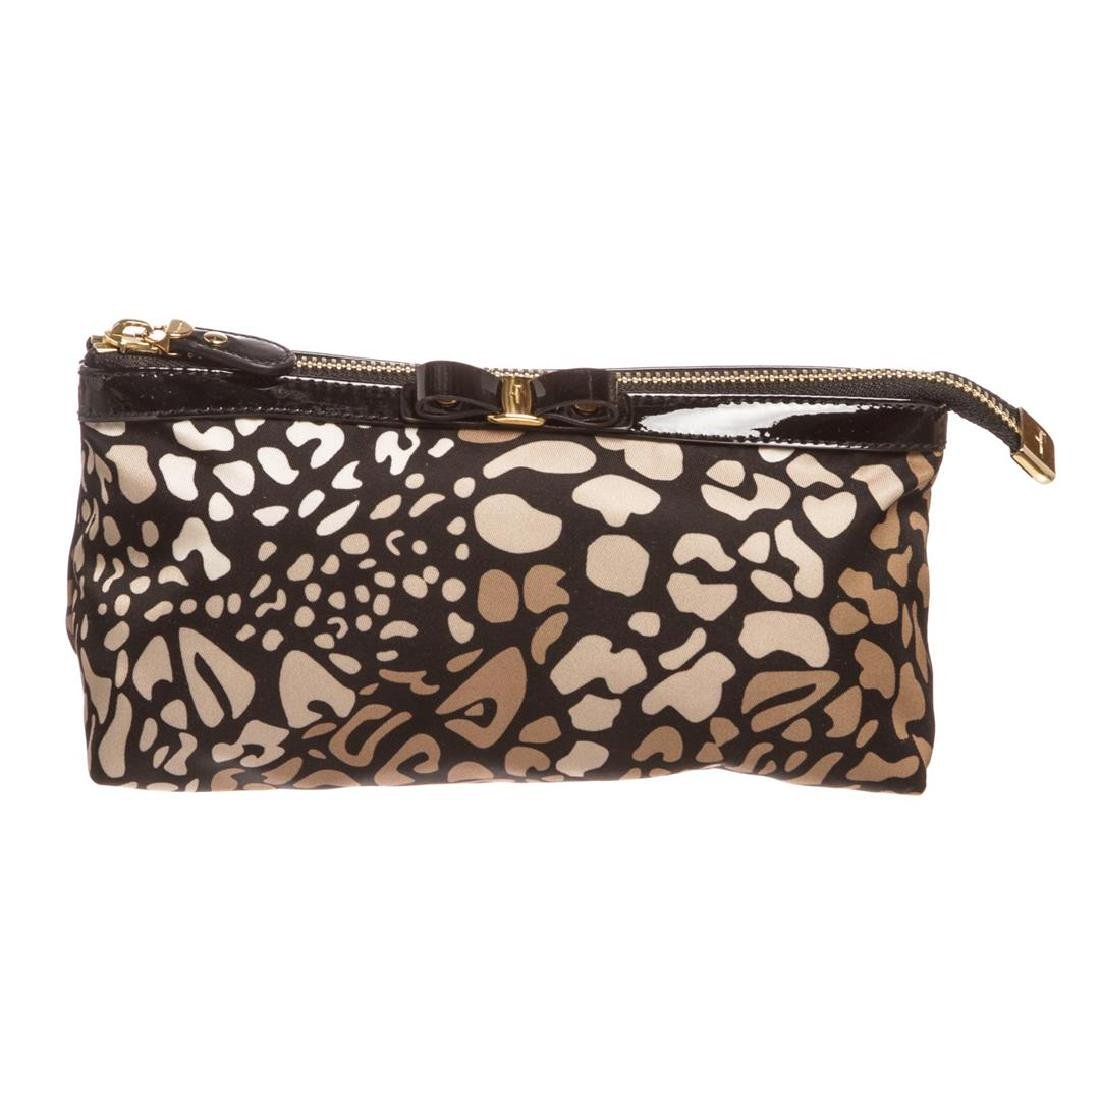 Salvatore Ferragamo Animal Print Nylon Patent Leather